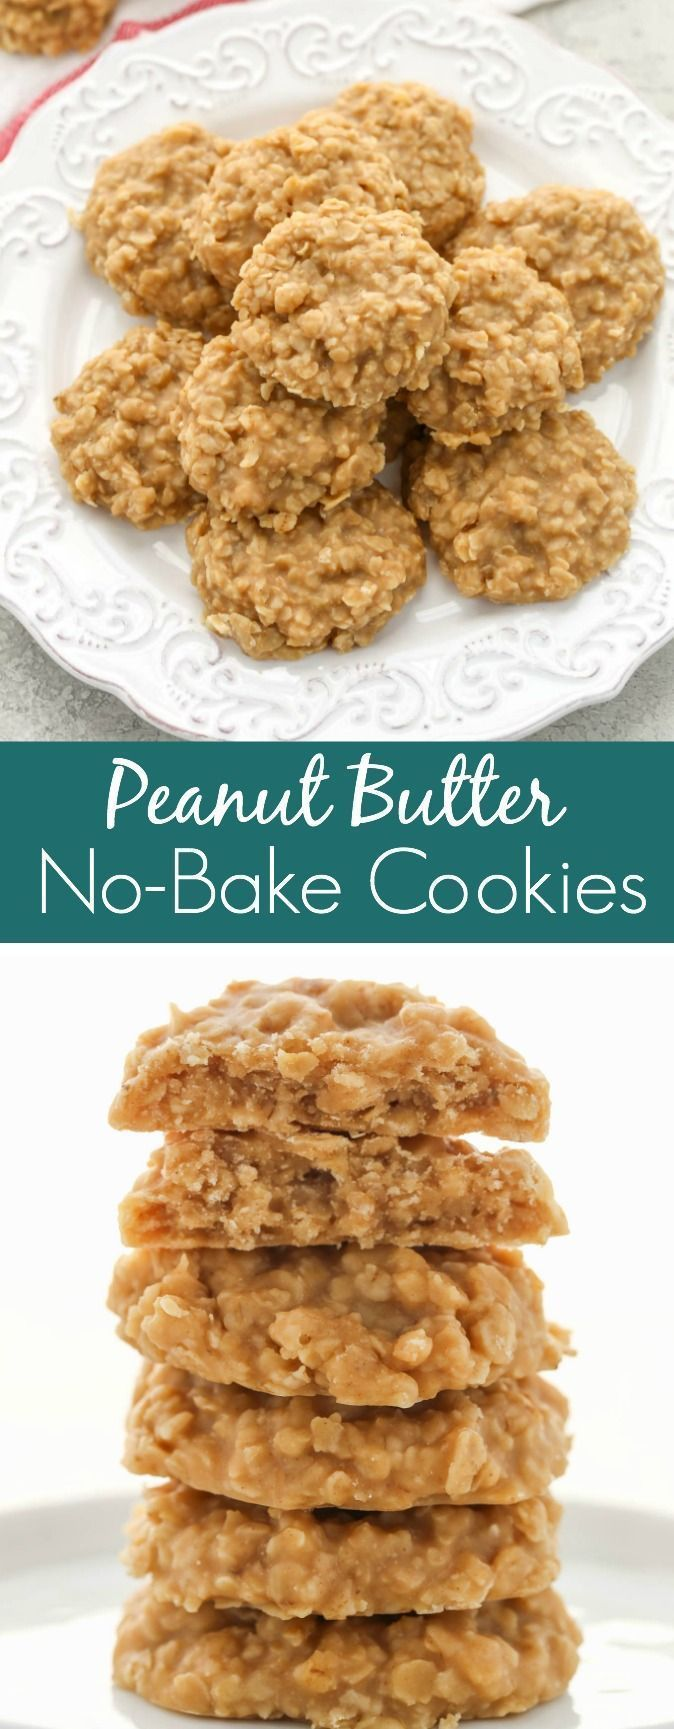 Peanut Butter No-Bake Cookies - Live Well Bake Often -   16 peanut butter desserts Healthy ideas